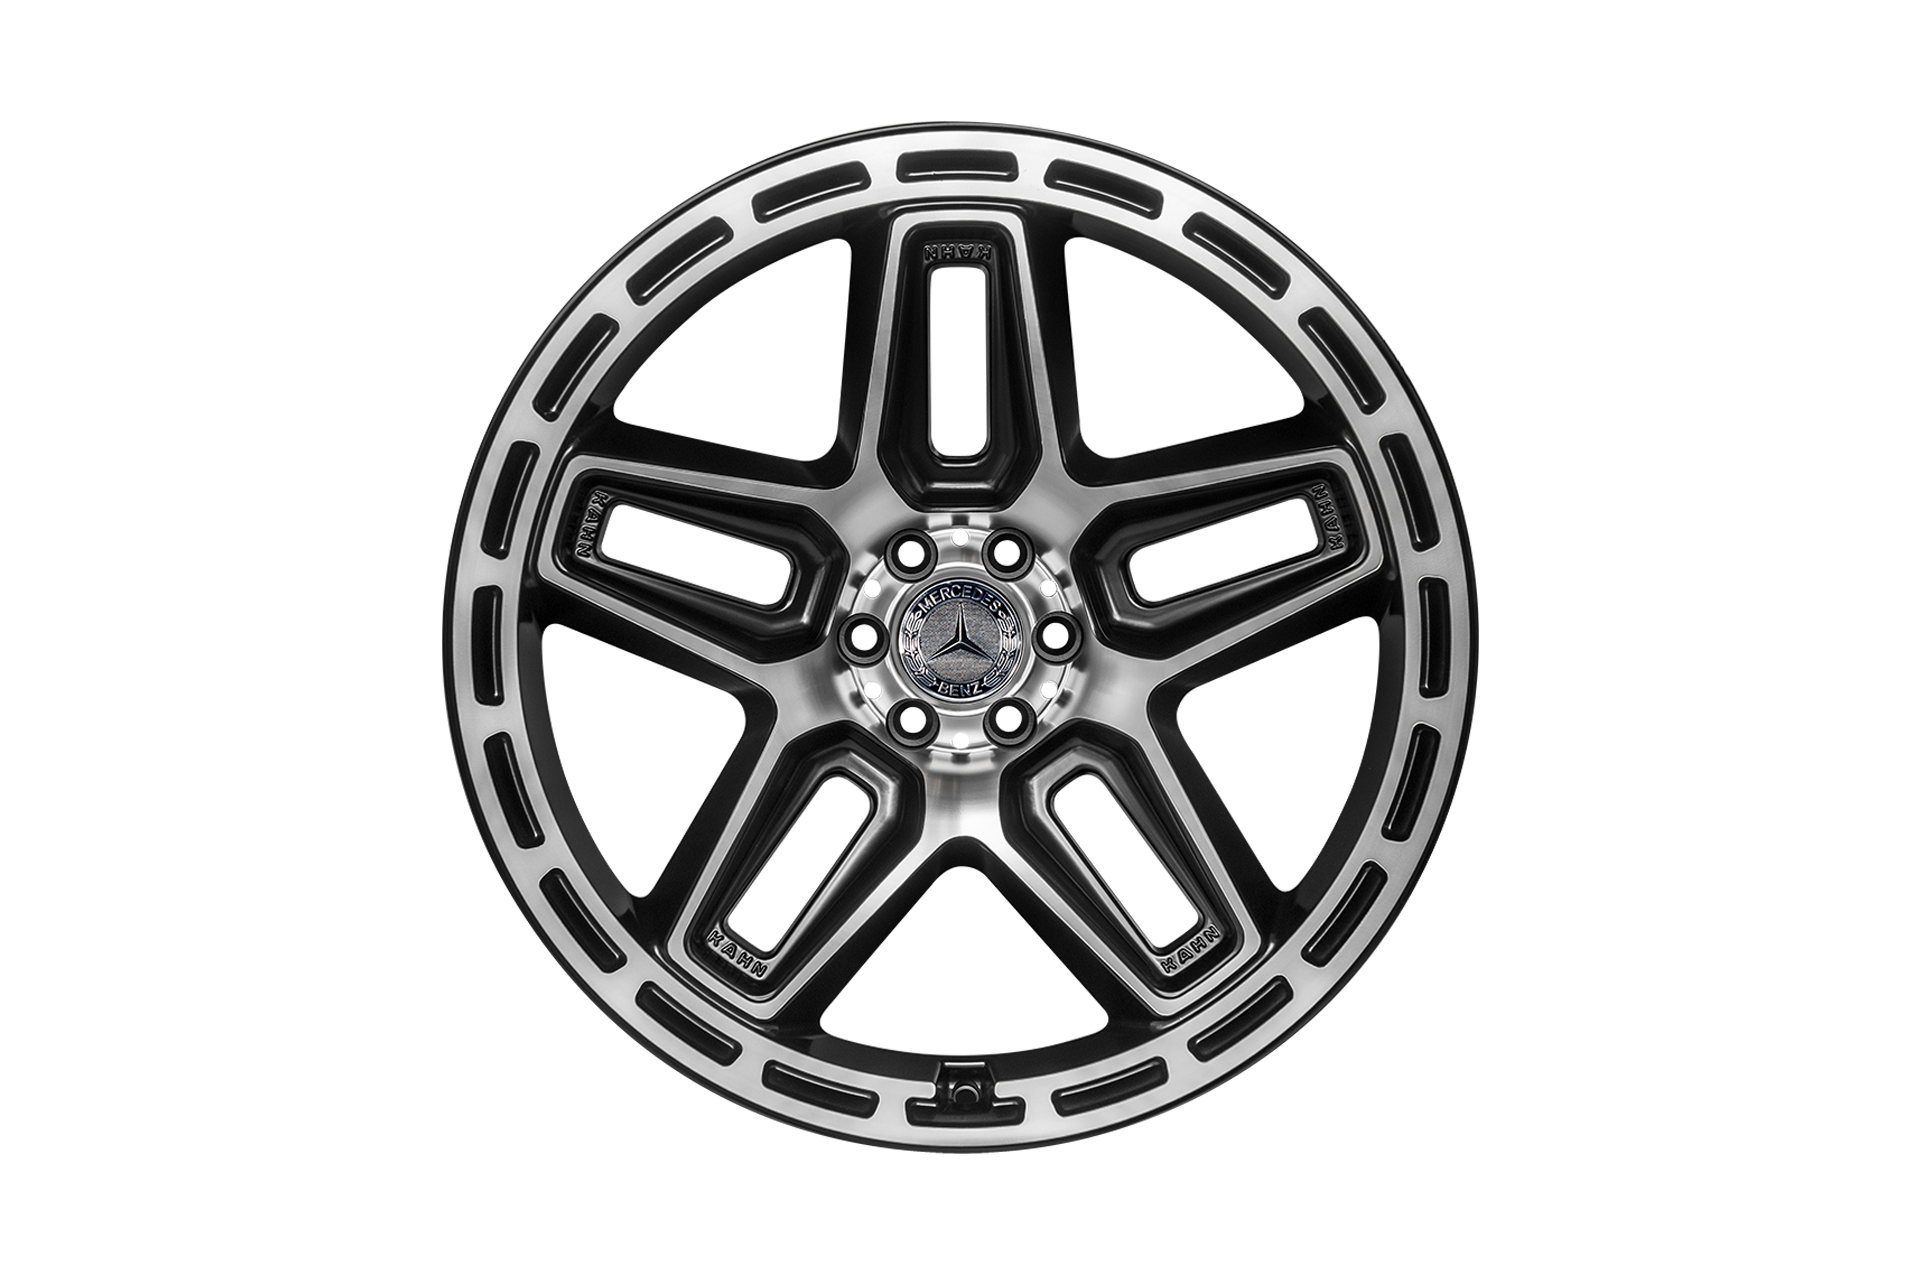 Mercedes Ml (2011-2015) G06 Light Alloy Wheels by Chelsea Truck Company - Image 3982